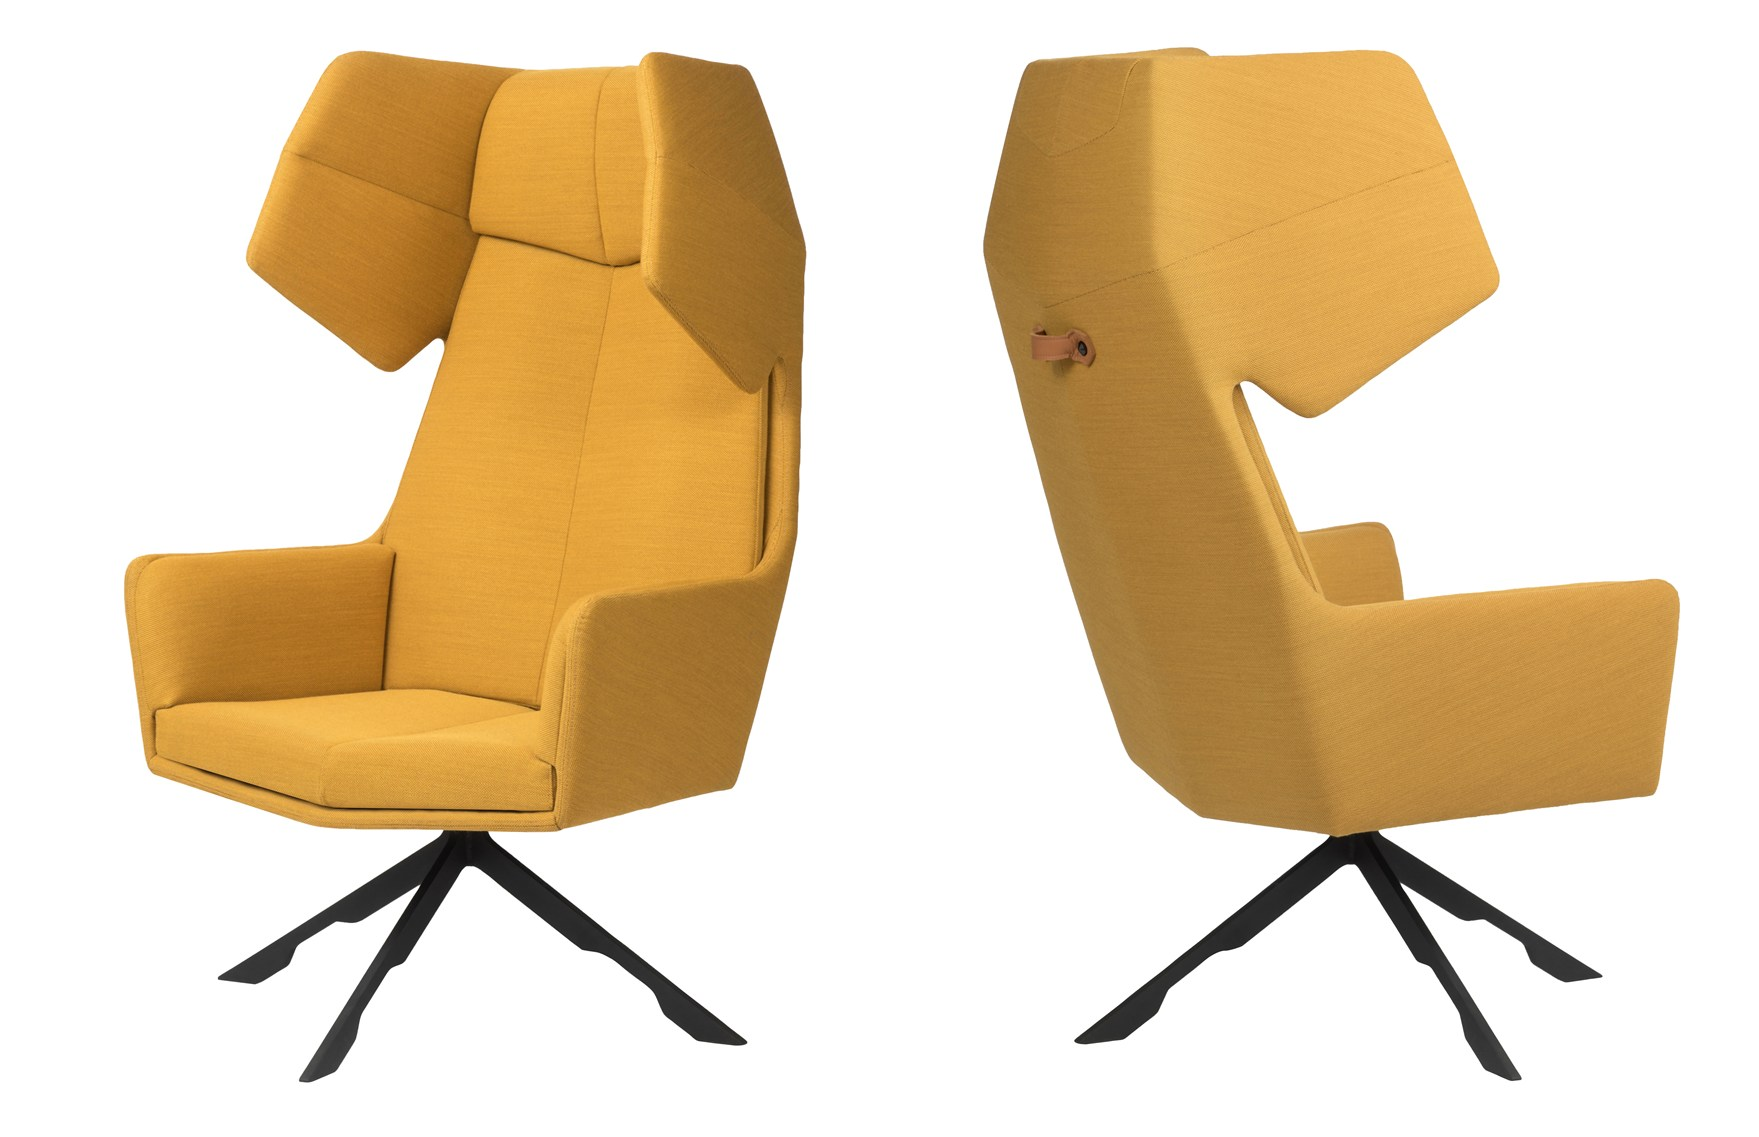 Rama for palau 2016 lounge chair - Rama Armchairs By Arik Levy For Palau